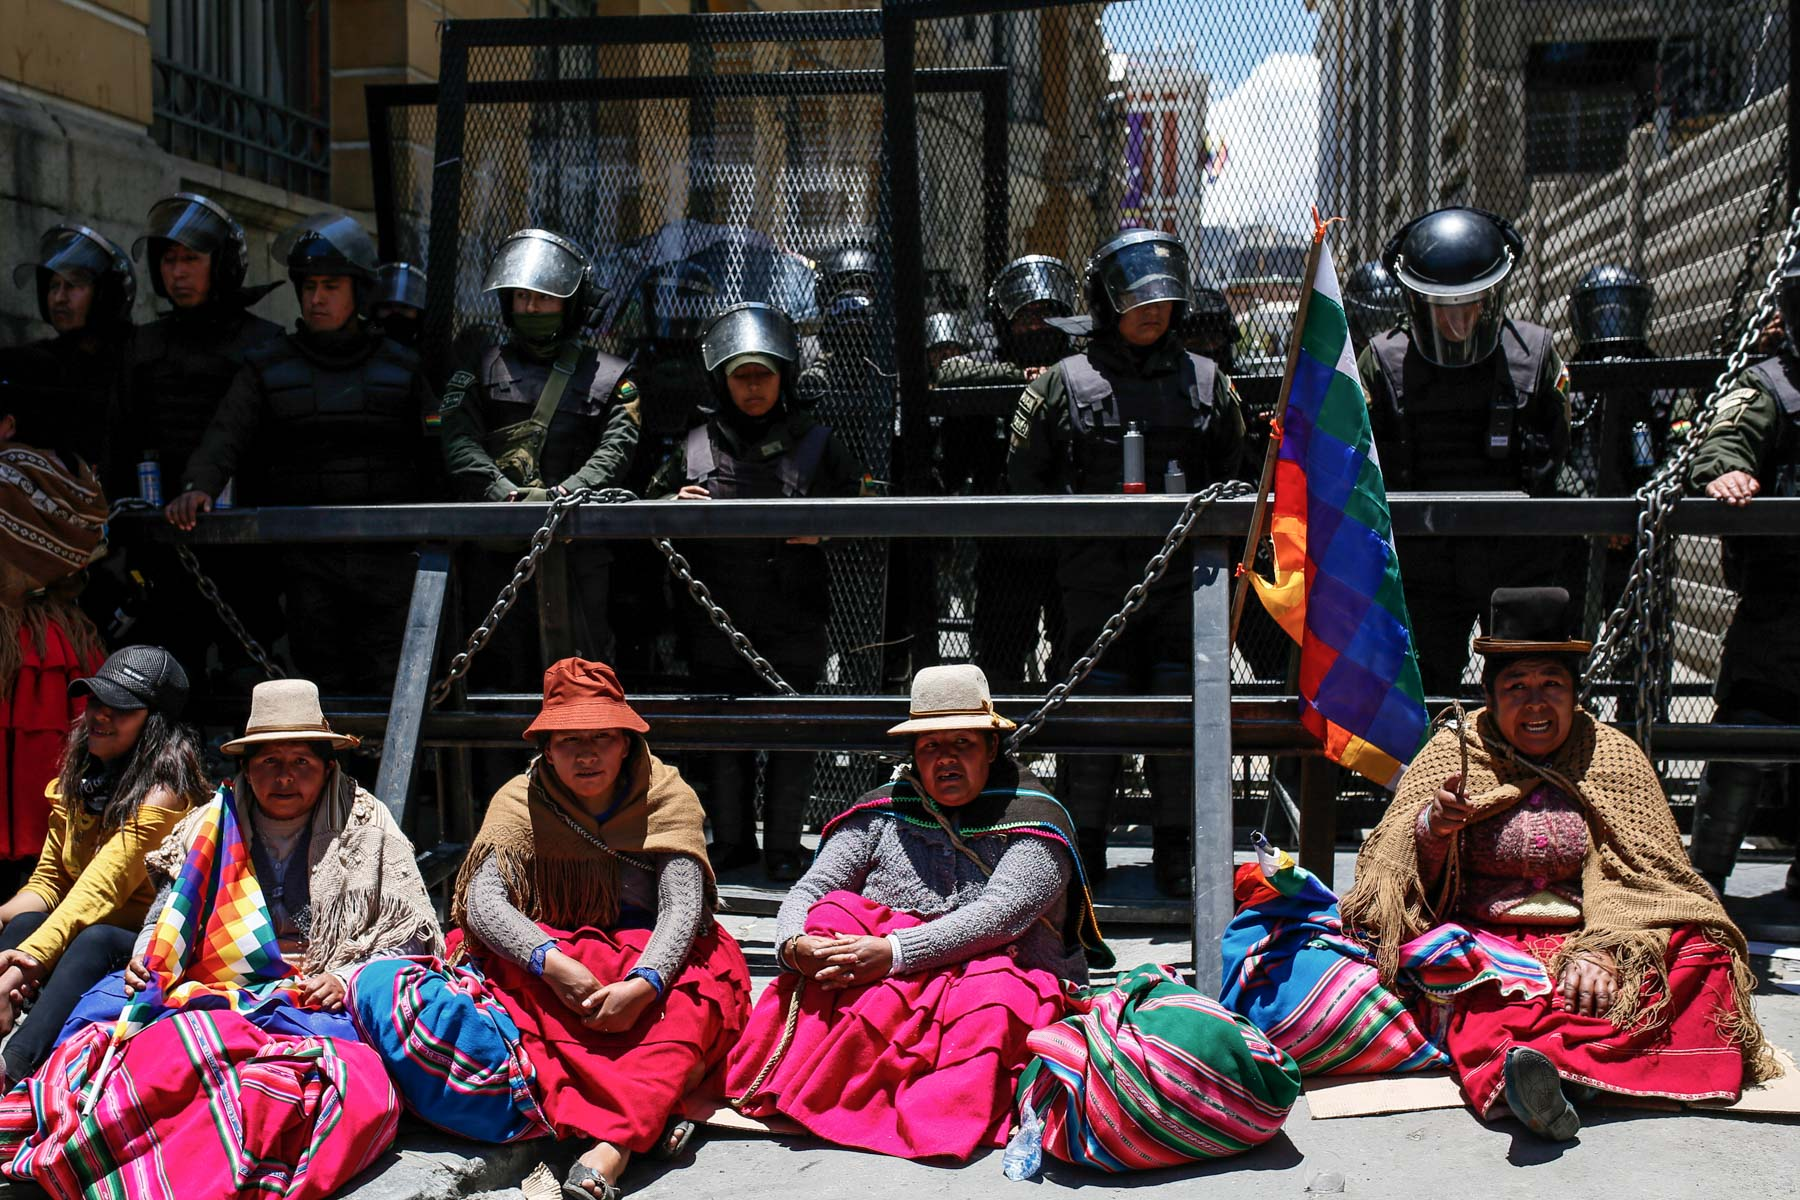 18 November 2019: Indigenous women sit next to a police barricade during a demonstration supporting former President Evo Morales and opposing incumbent President Jeanine Añez in La Paz, Bolivia. (Photograph by Gaston Brito Miserocchi/ Getty Images)